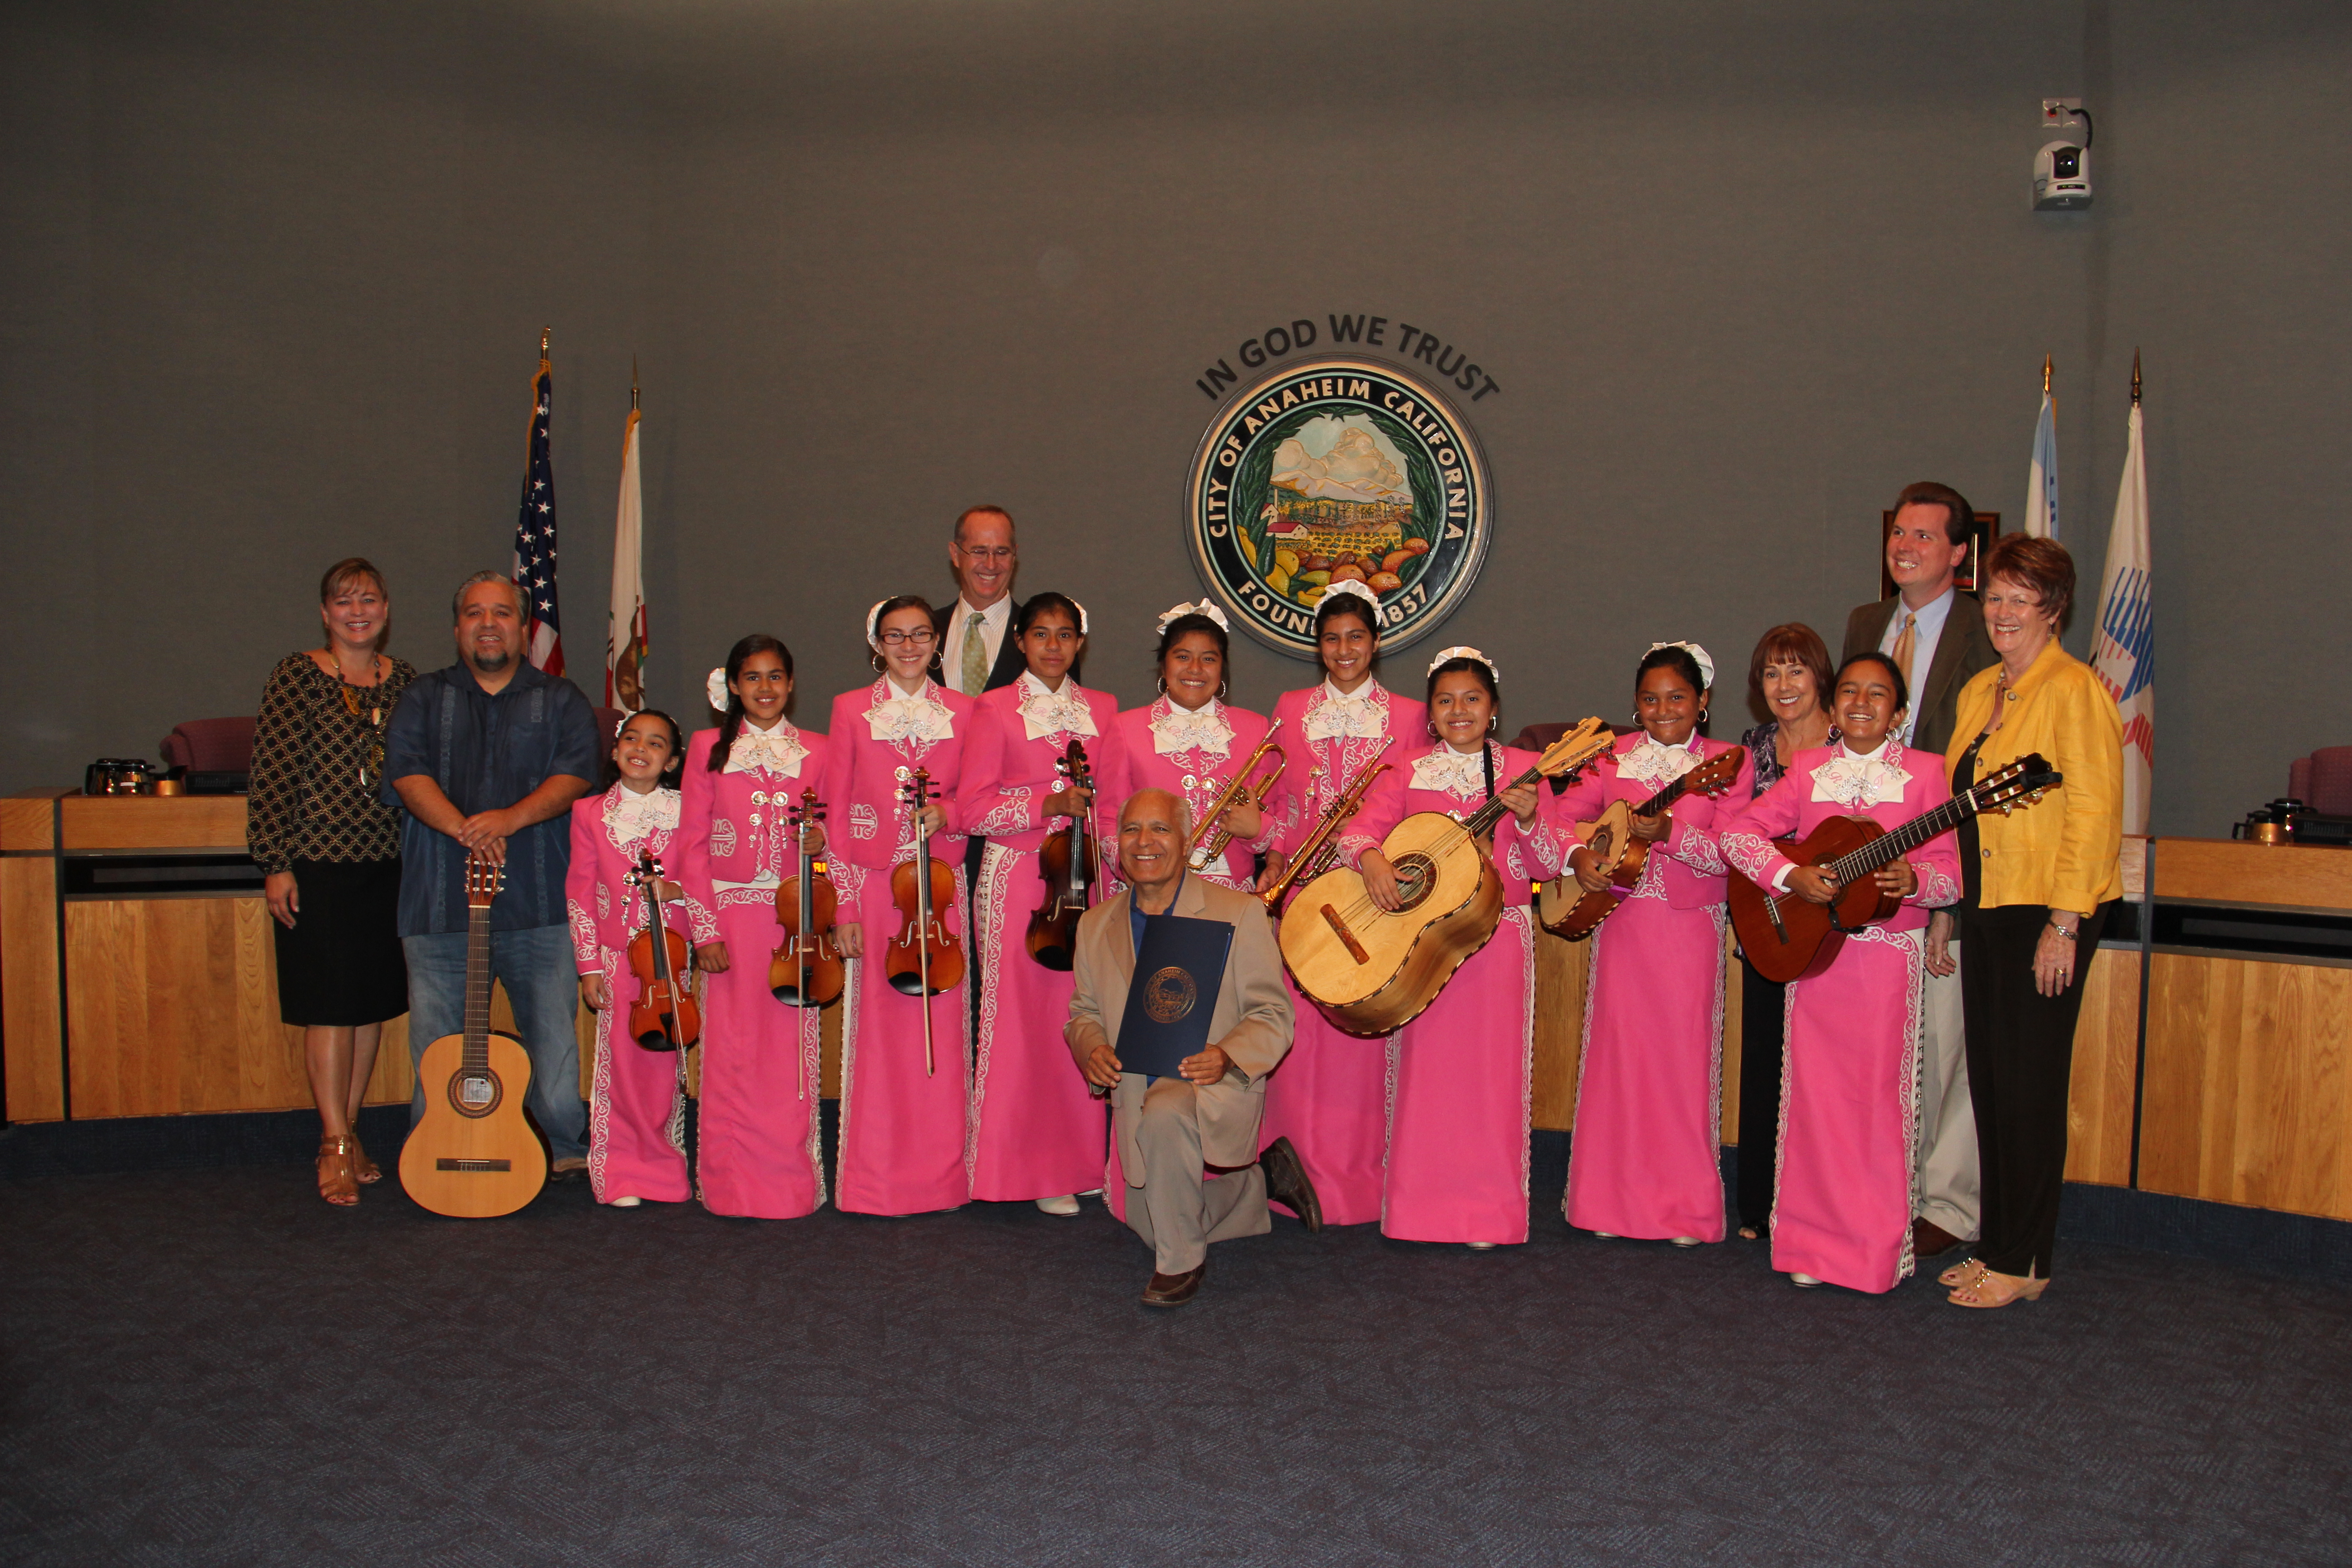 Band of women in pink dresses holding instruments with a man in the middle keeling down holding a blue folder